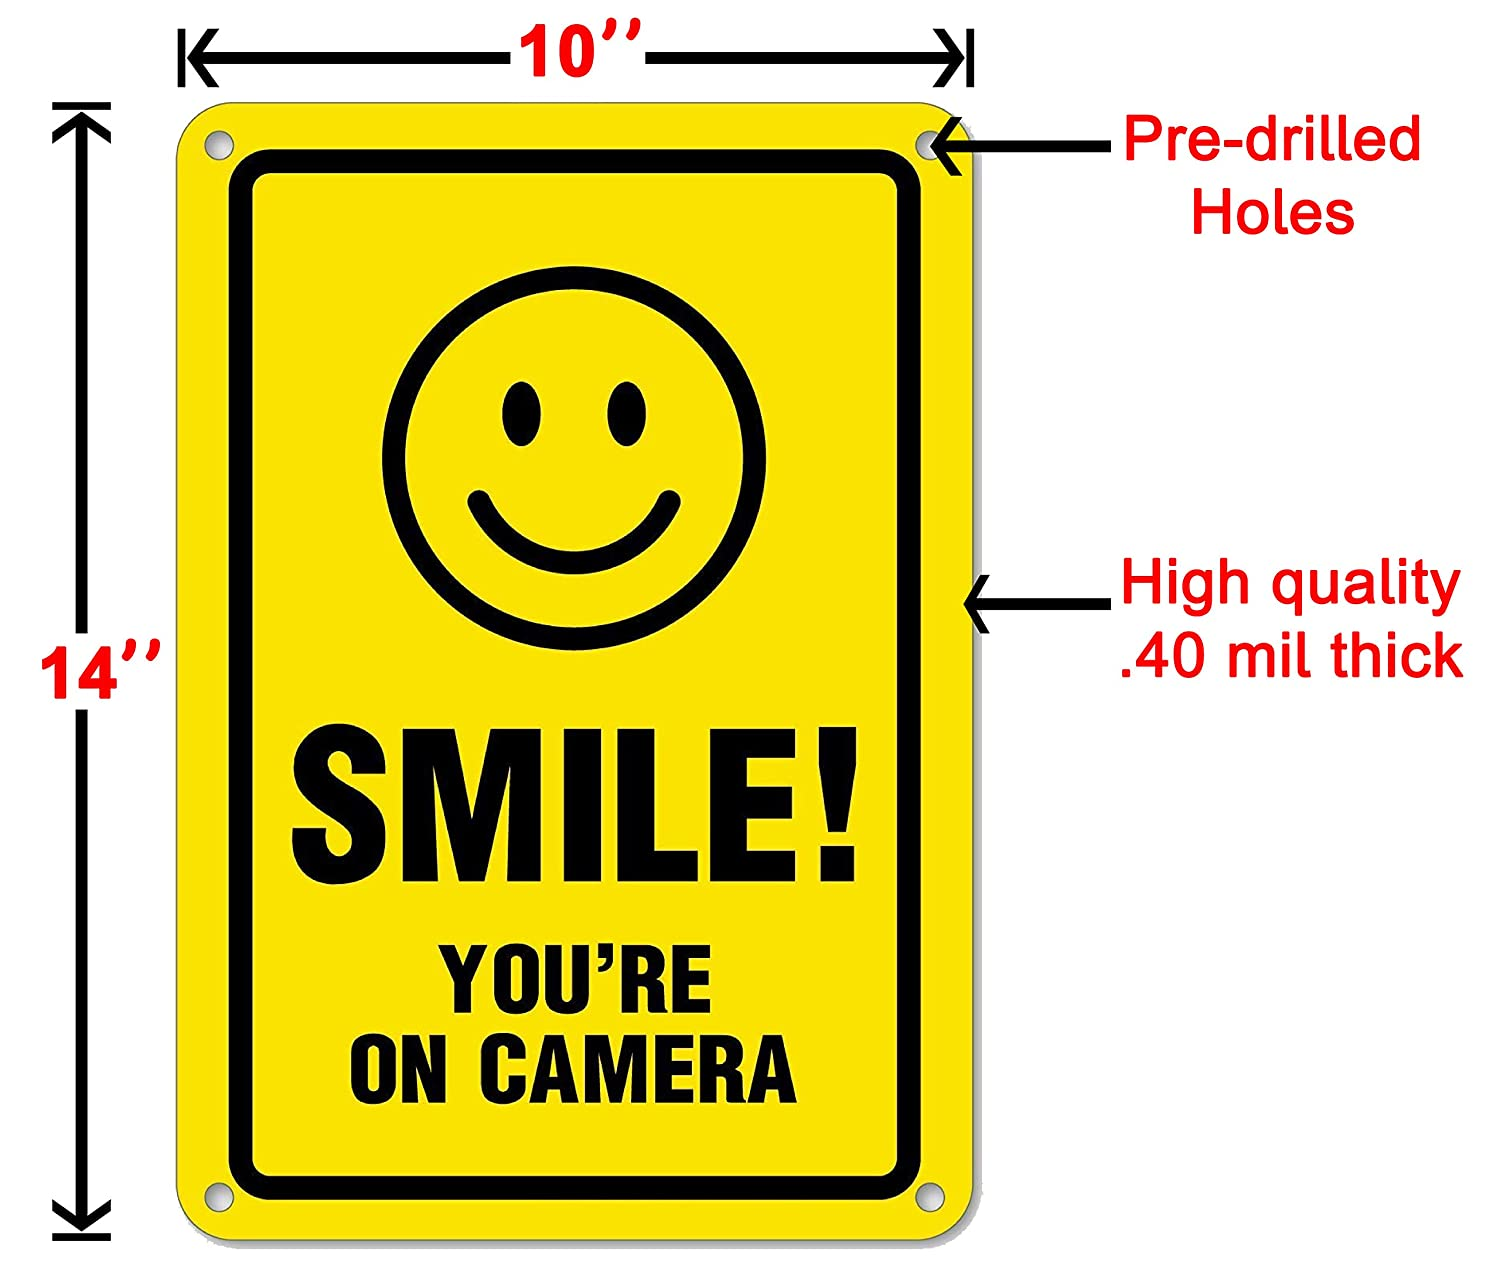 Amazon.com: Smile Youre On Camera - Señal de seguridad para ...